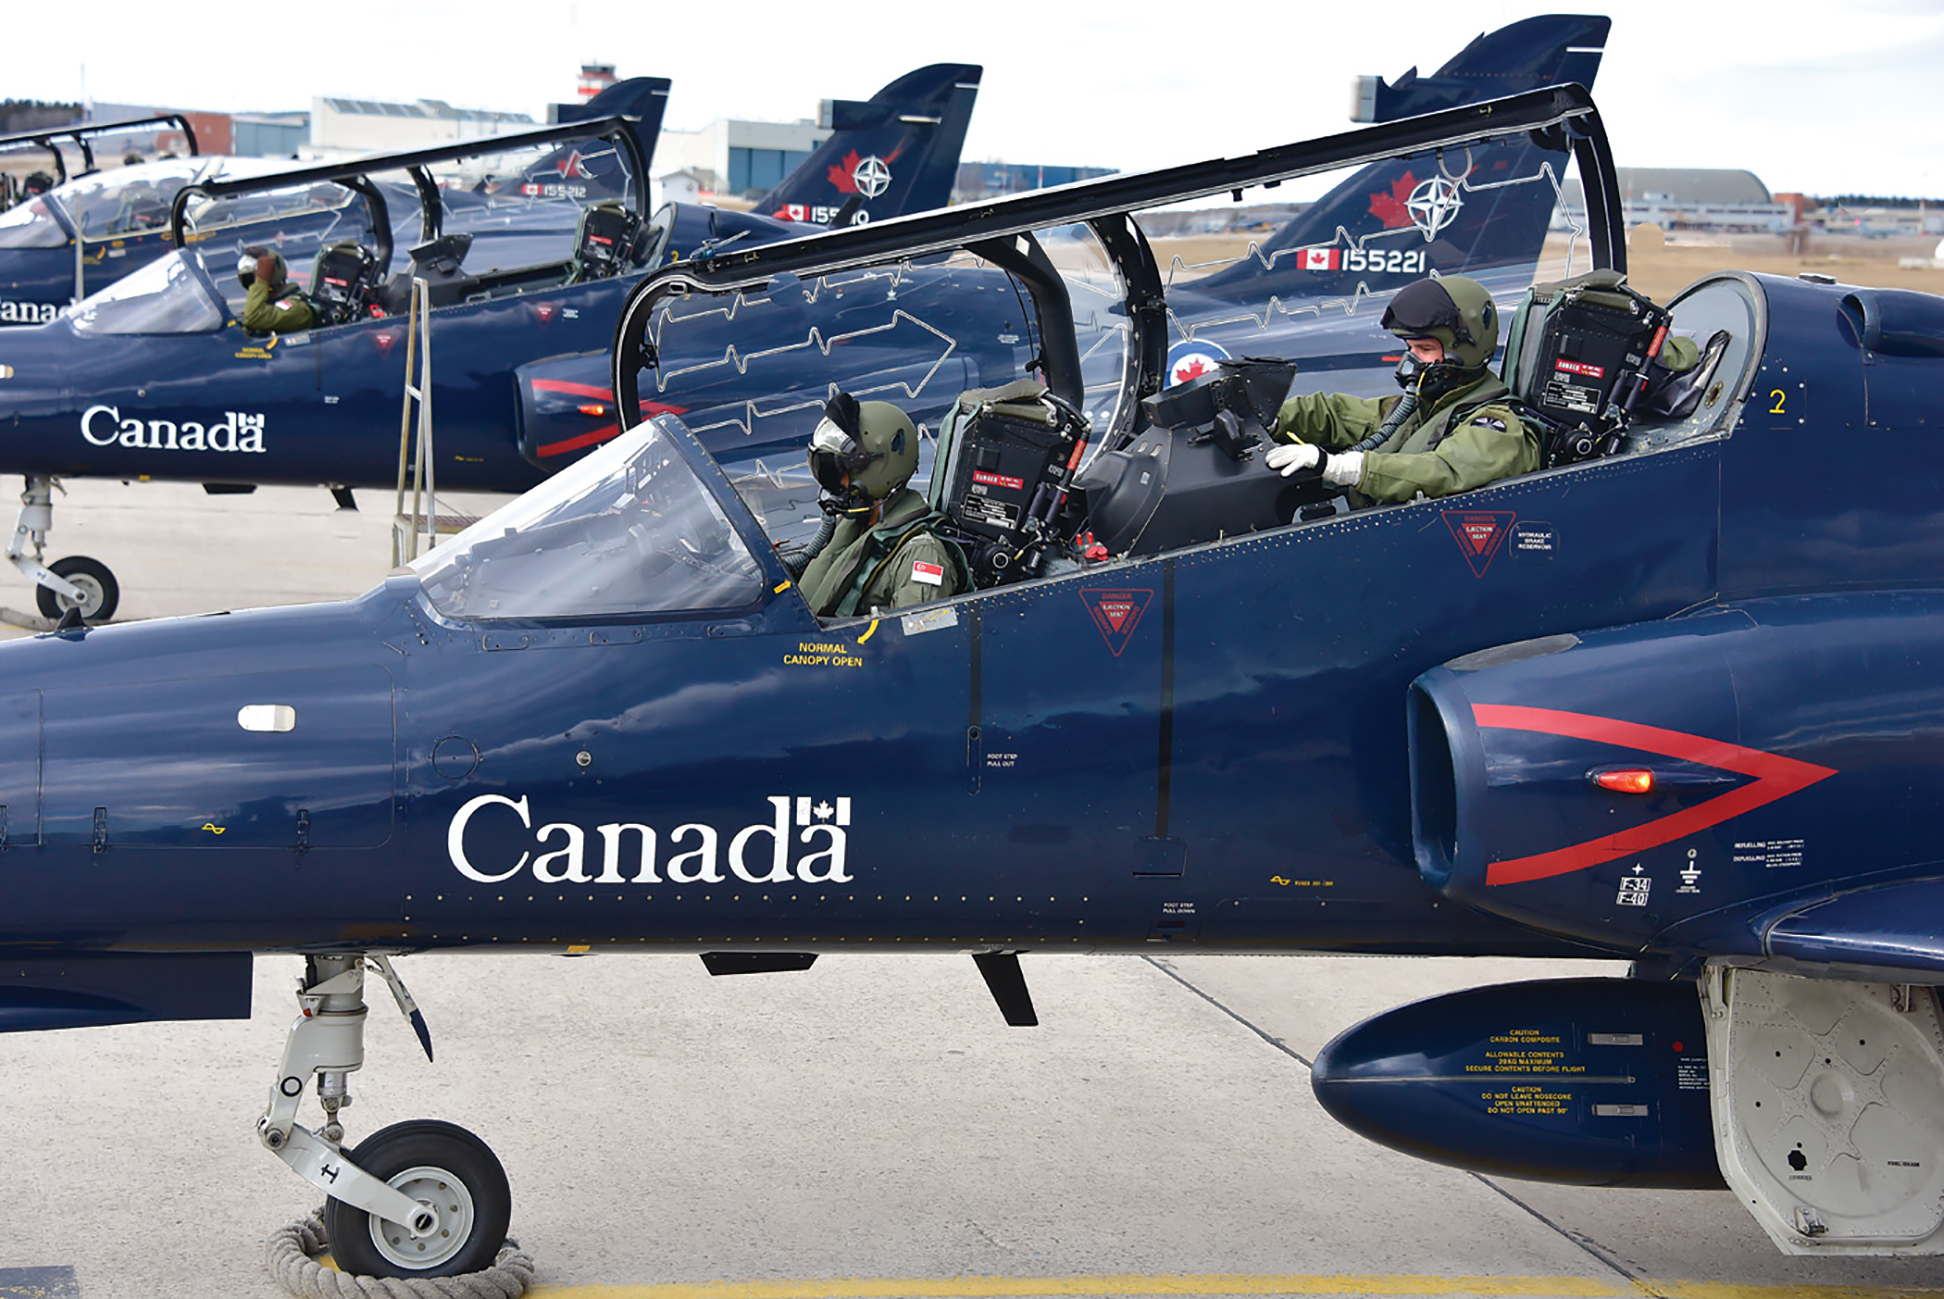 419 Squadron prepares students for fighter operations by instilling three critical competencies: situational awareness, capacity and dynamic decision-making. PHOTO: Mike Reyno, Skies magazine